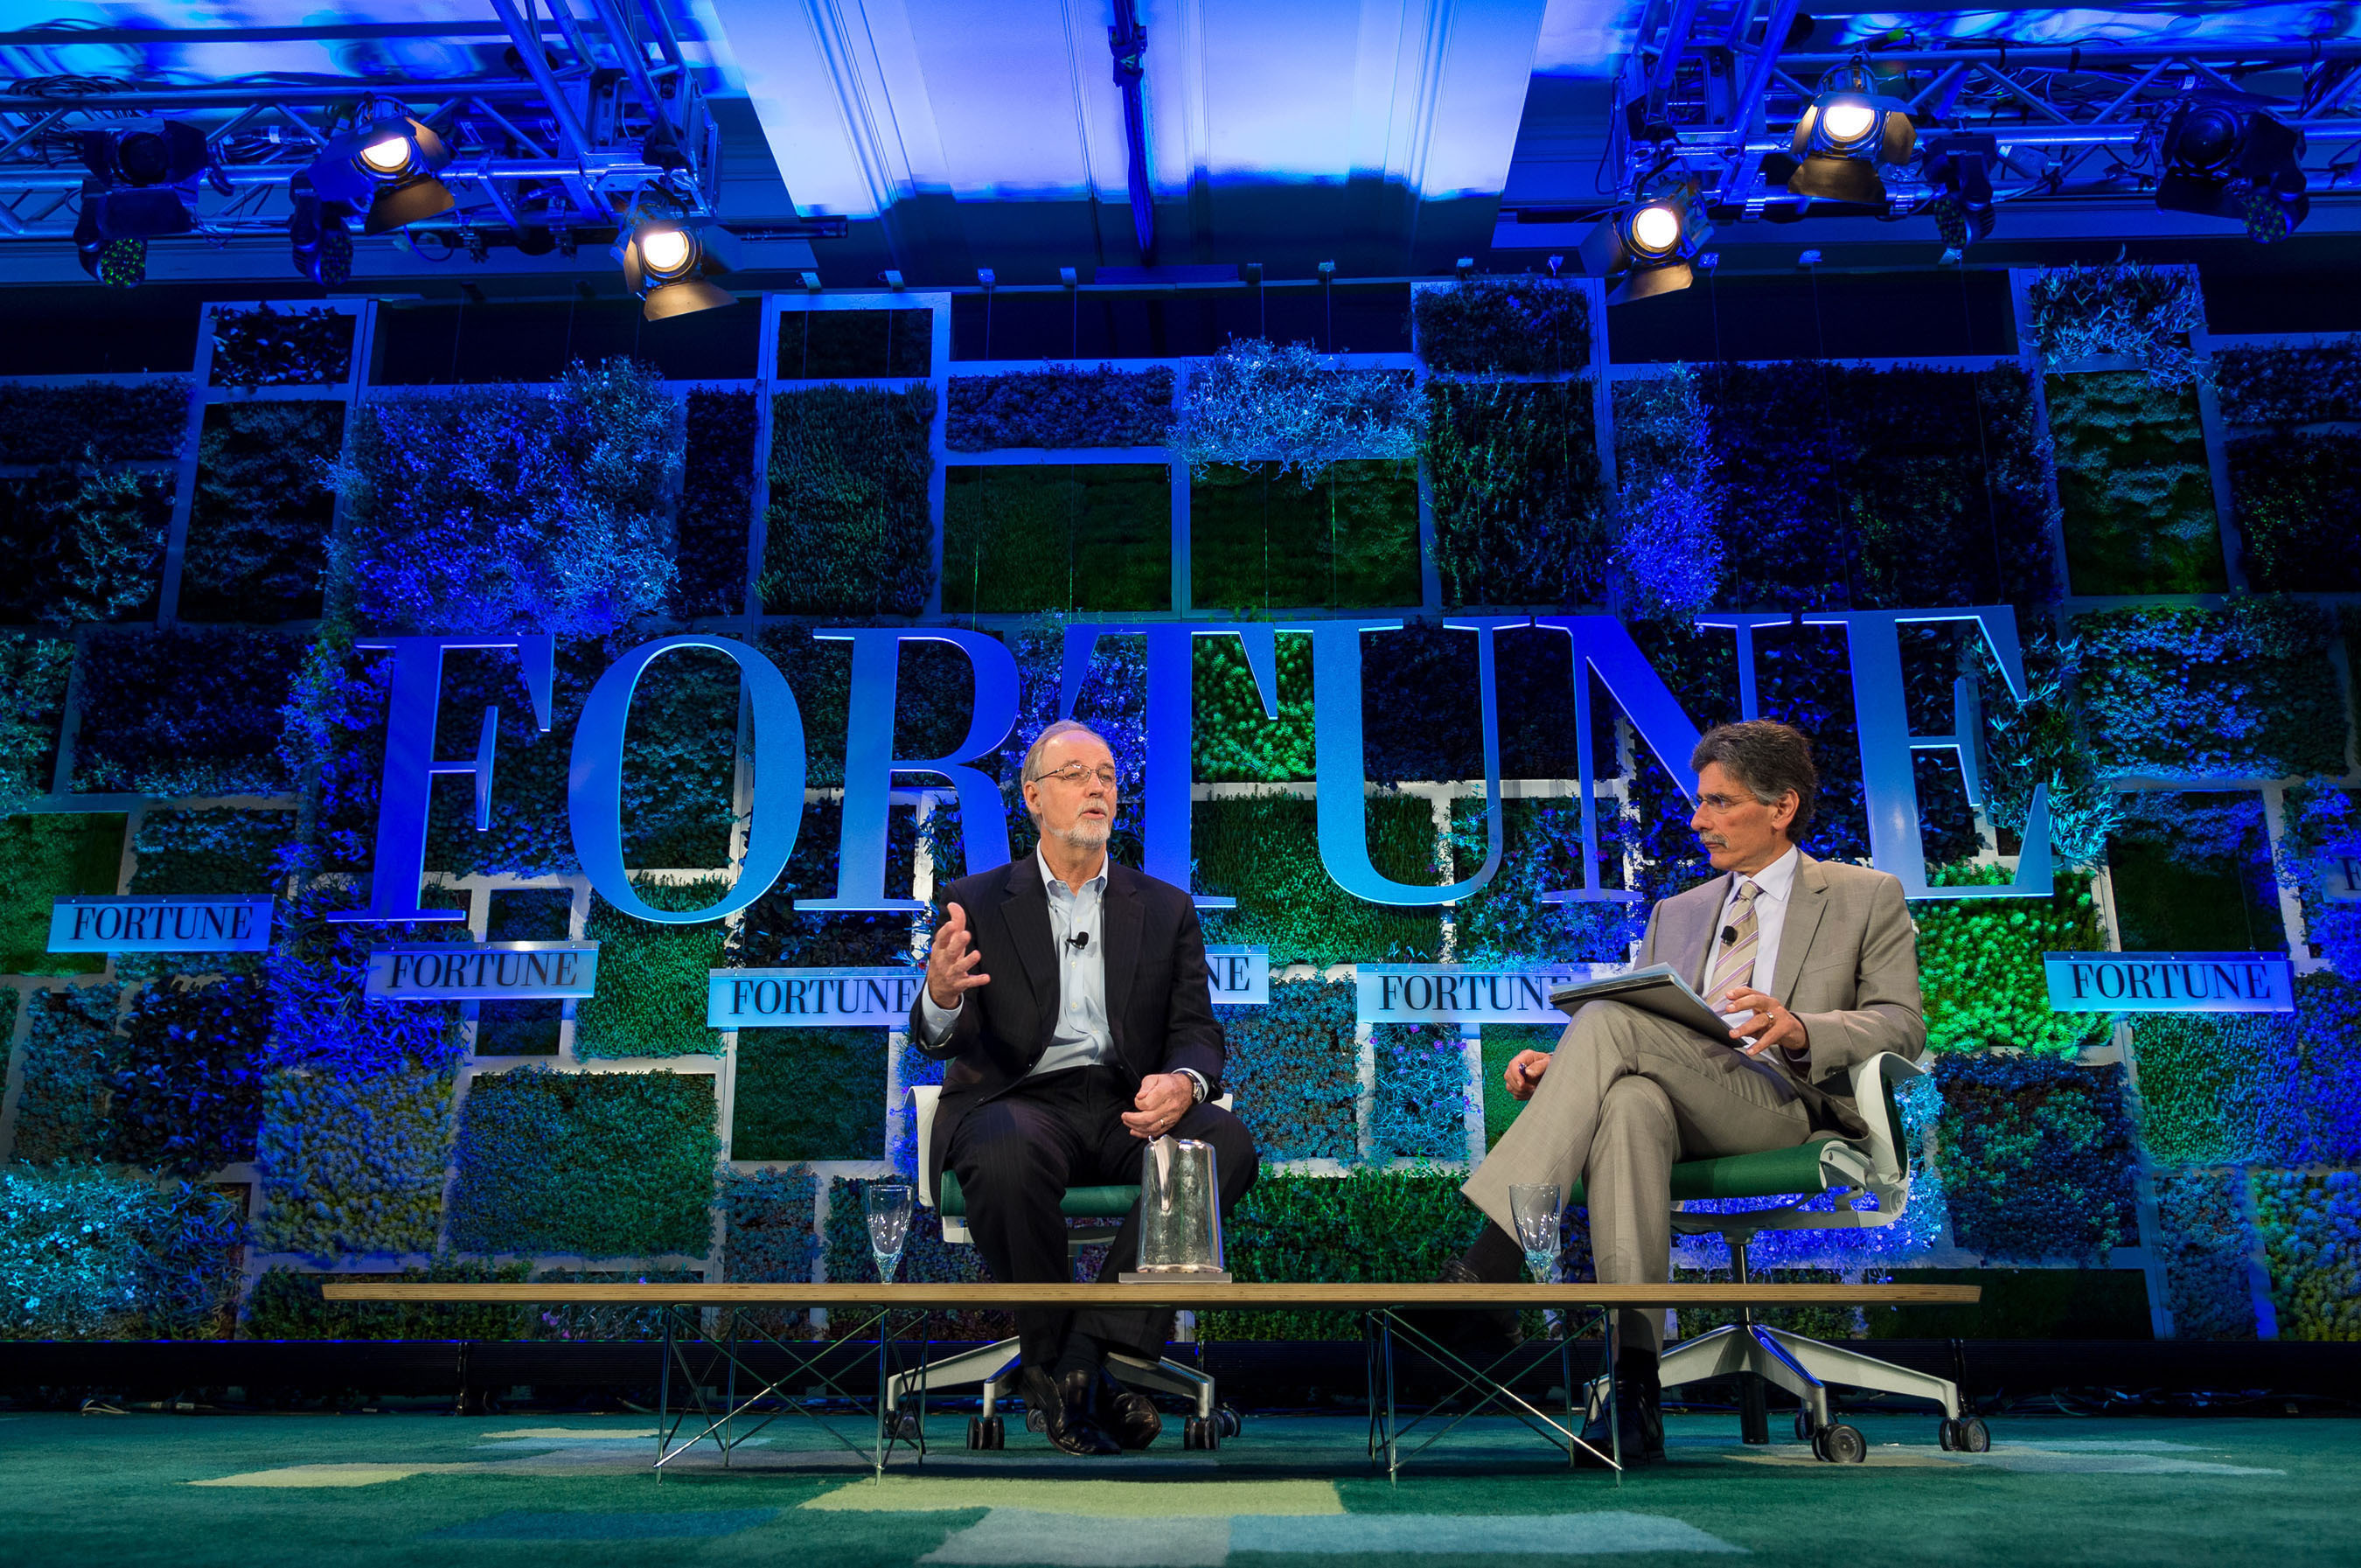 General Mills Chairman and CEO Ken Powell took the stage at Fortune Brainstorm Green in Laguna Nigel, Calif., Tuesday to talk about the role General Mills and other responsible food companies play in sustainably managing and growing the global food supply. Photograph by Stuart Isett/Fortune Brainstorm Green.  (PRNewsFoto/General Mills, Stuart Isett)